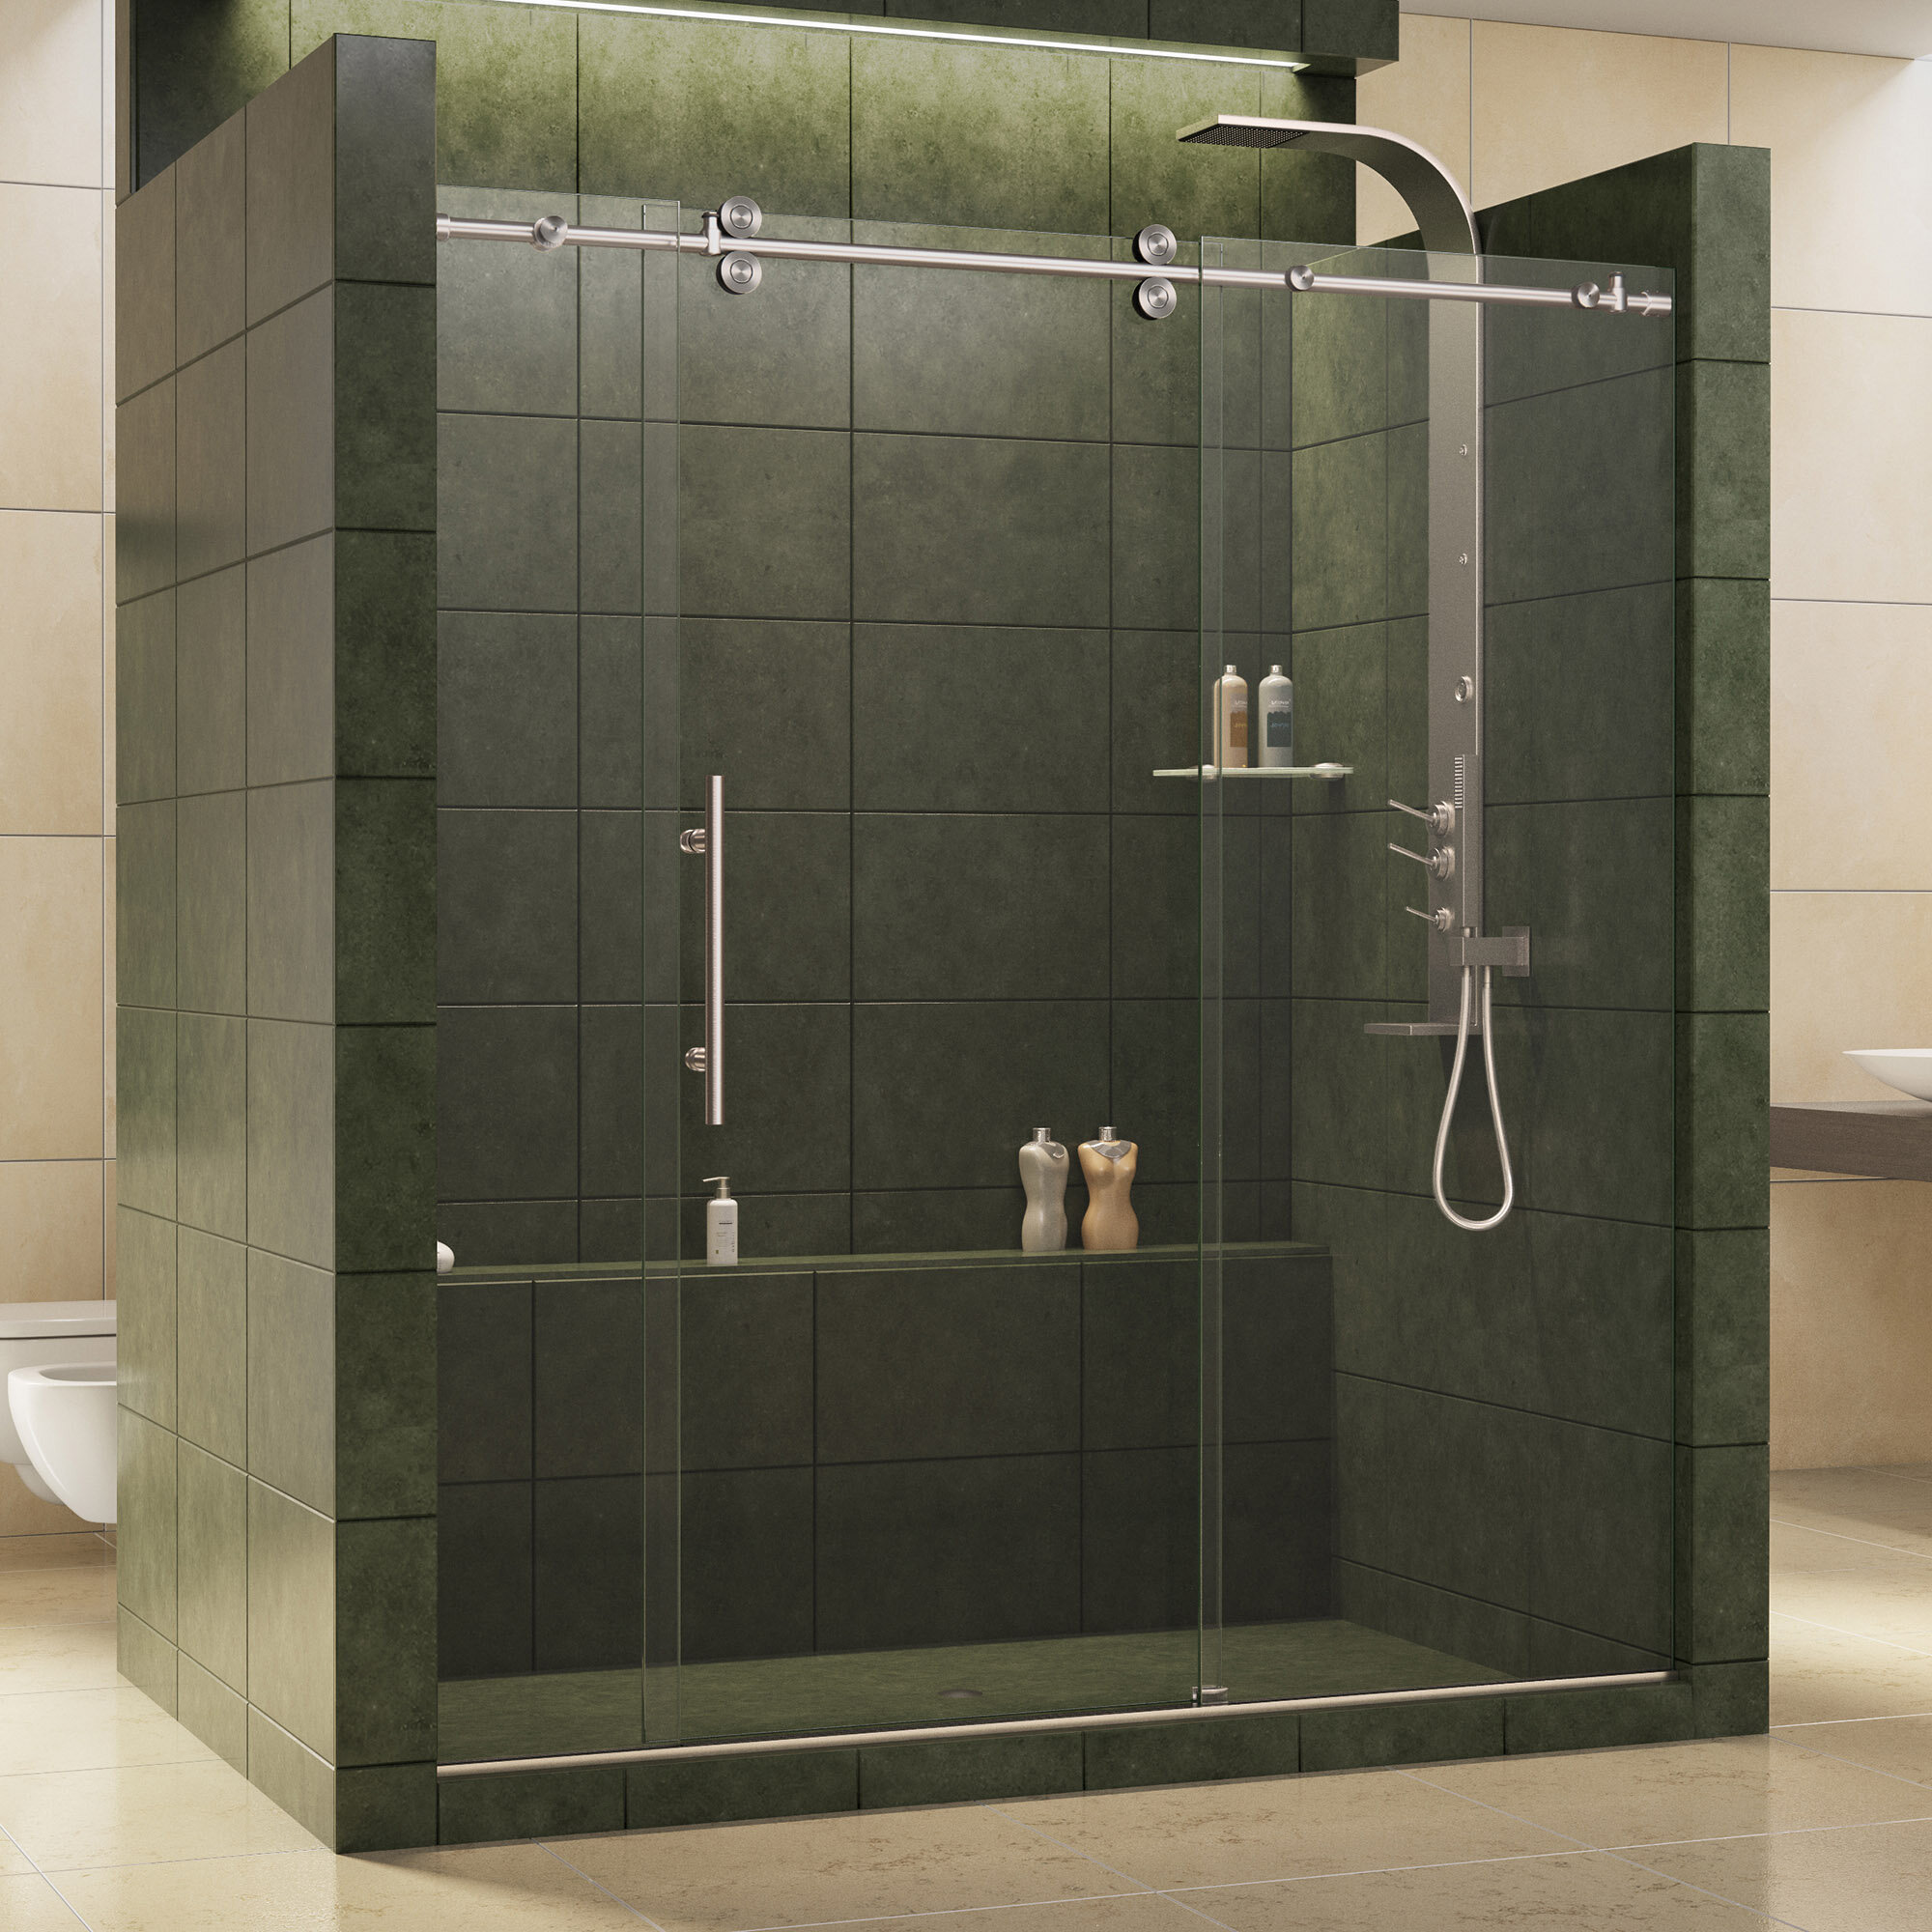 Enigma Z 72 X 79 Single Sliding Frameless Shower Door With Clearmax Technology